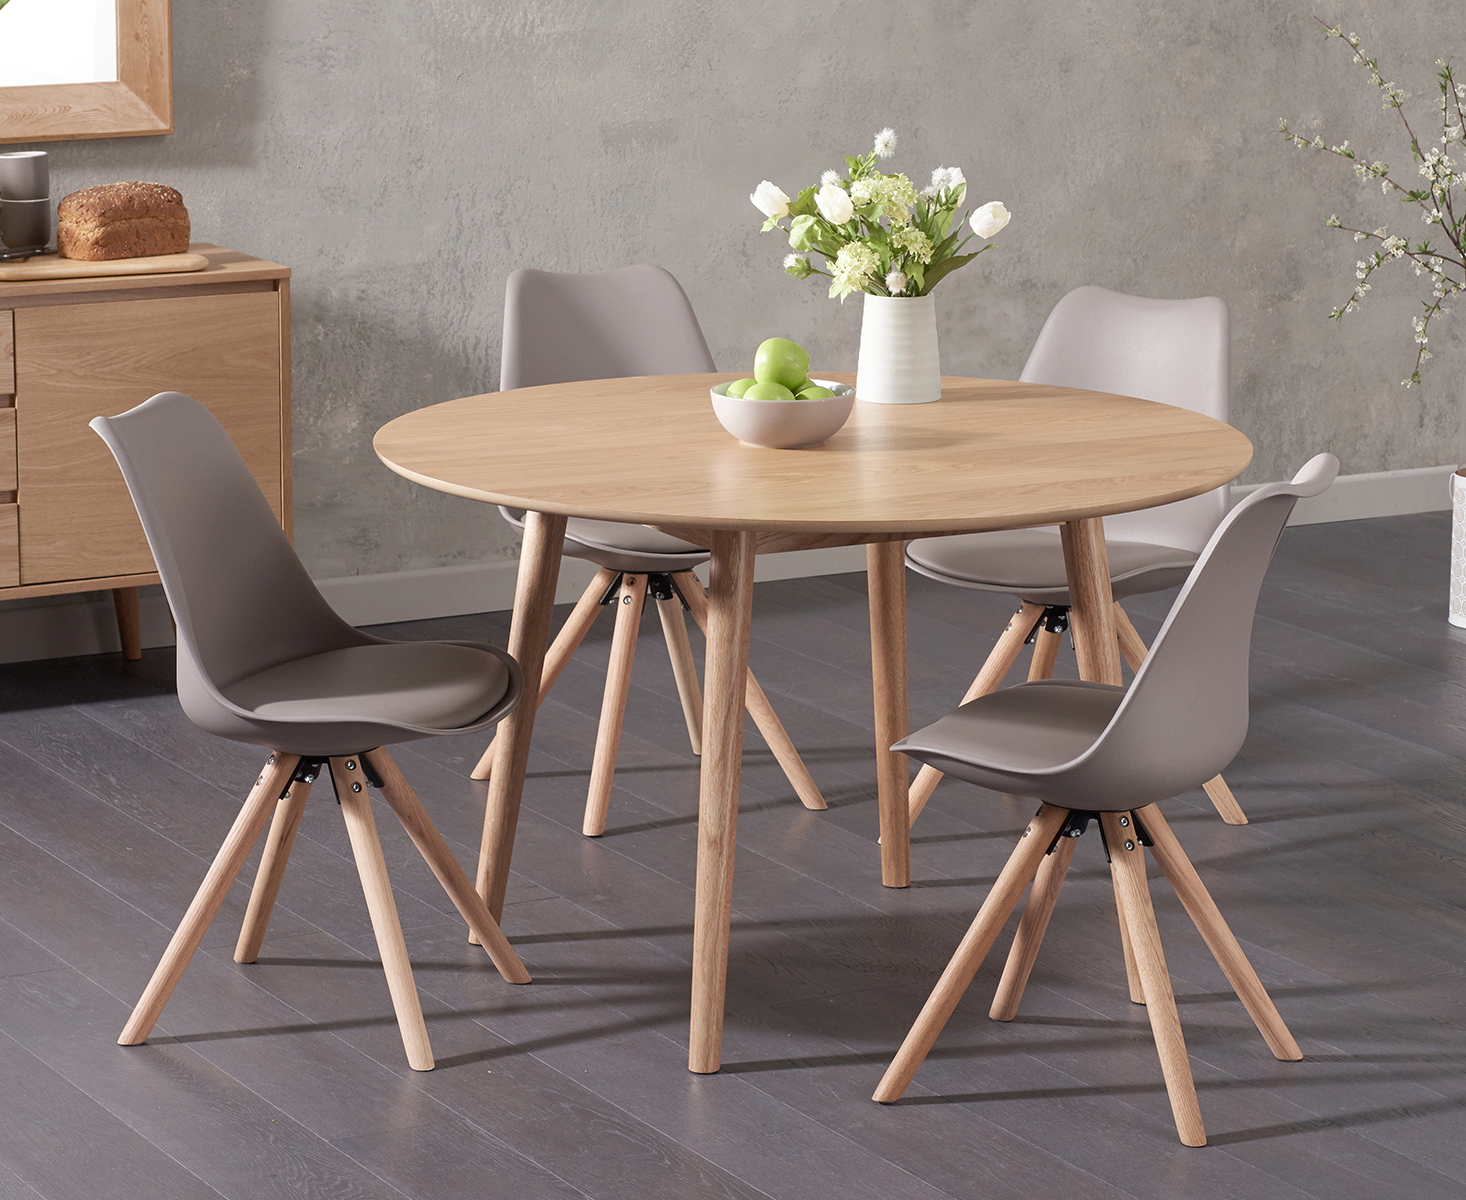 Round Oak Dining Table Nordic 120cm Round Oak Dining Table With Oscar Faux Leather Round Leg Chairs